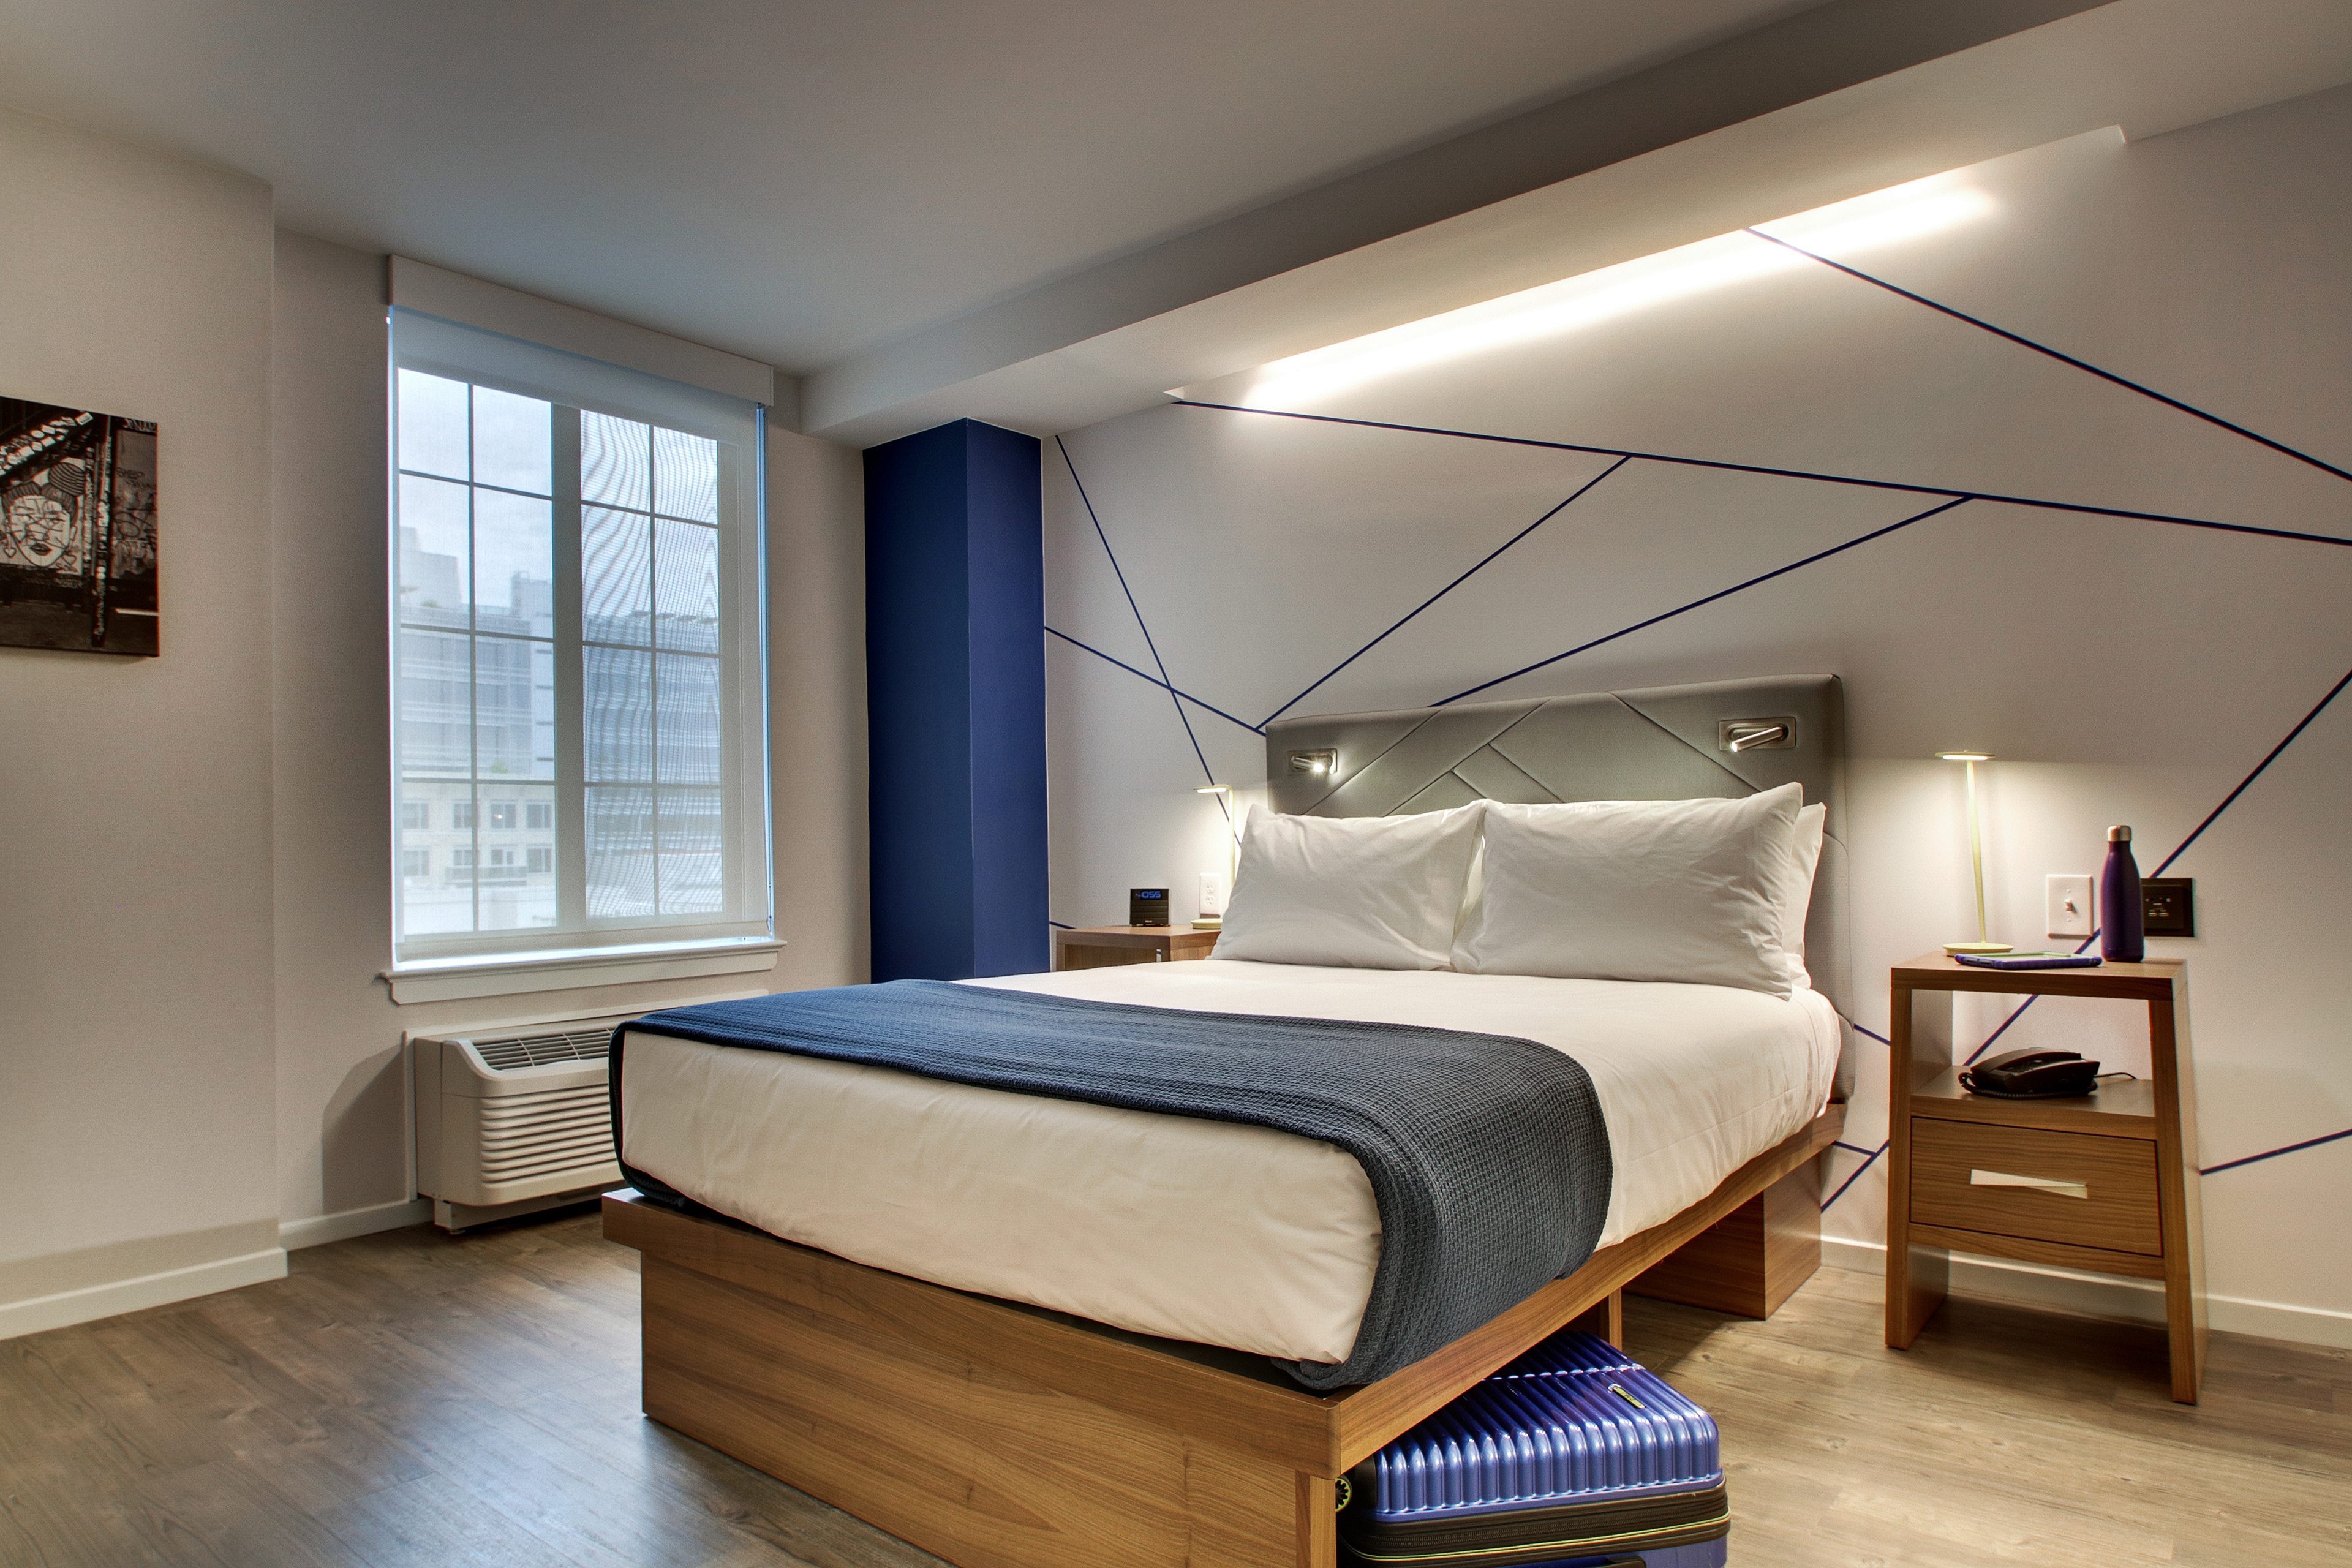 U.S. Micro-Hotel Pioneer, The Pod Hotels, Expands To